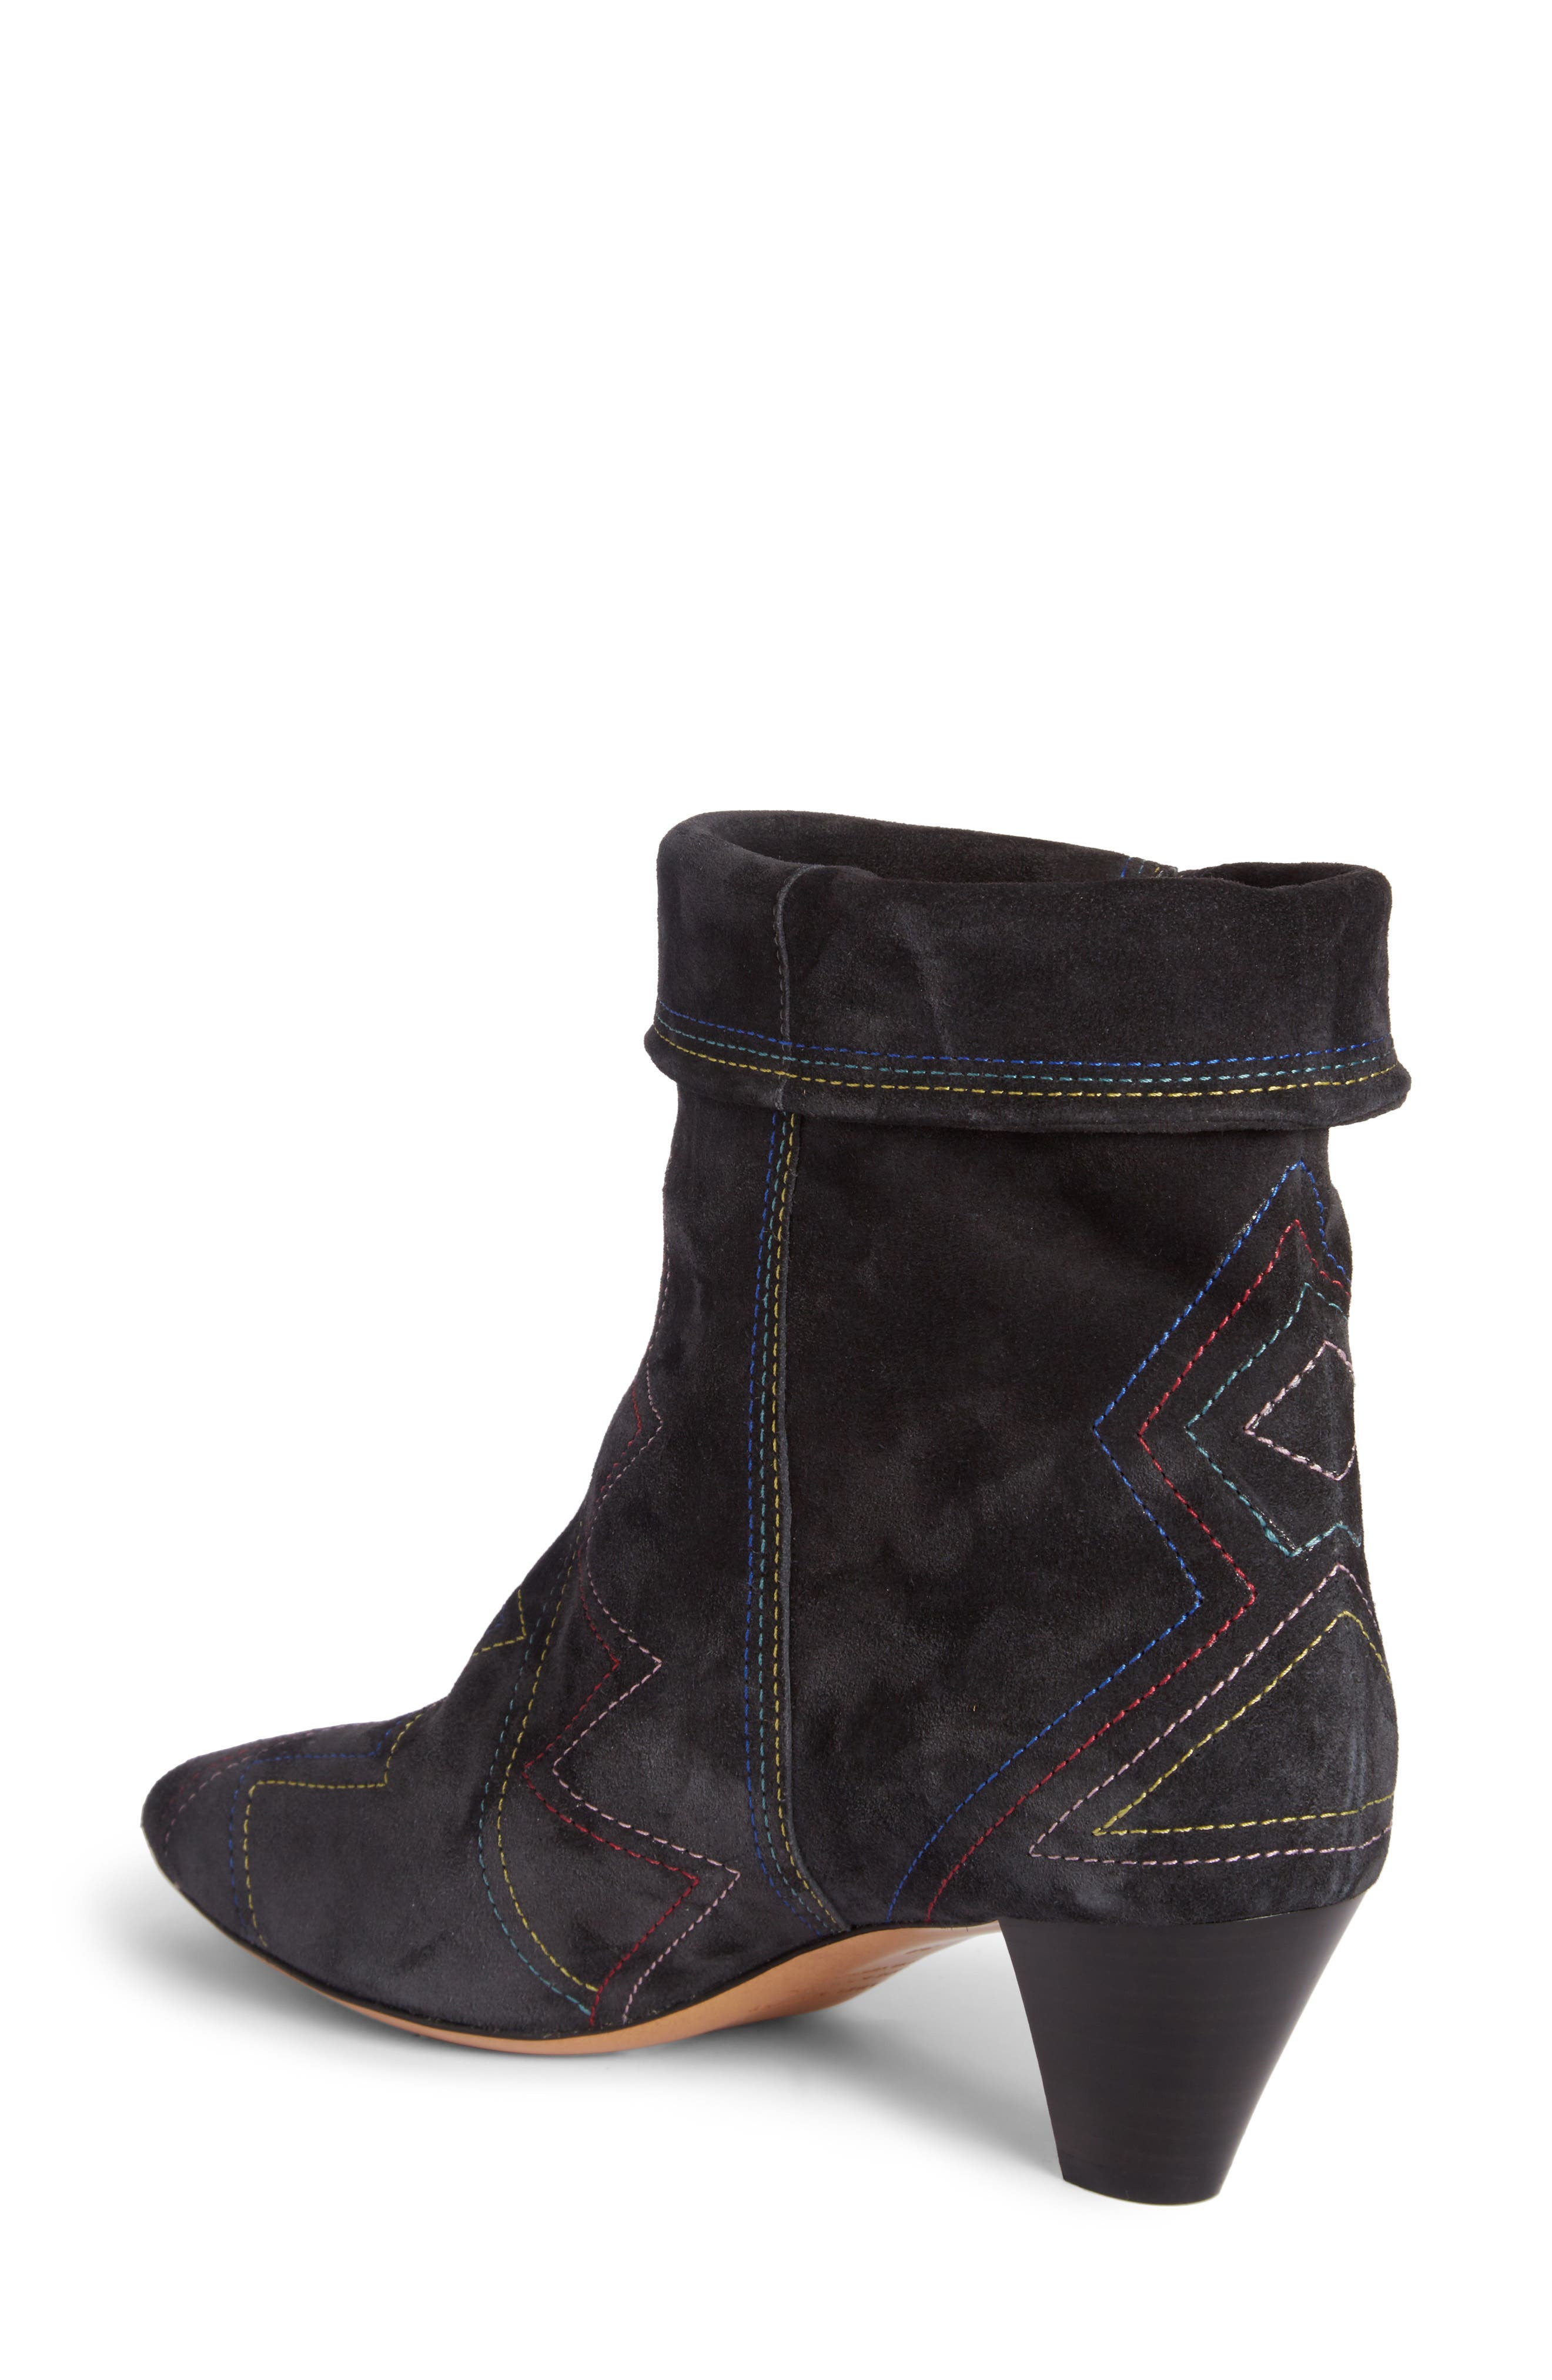 Dyna Topstitched Boot,                             Alternate thumbnail 2, color,                             Faded Black